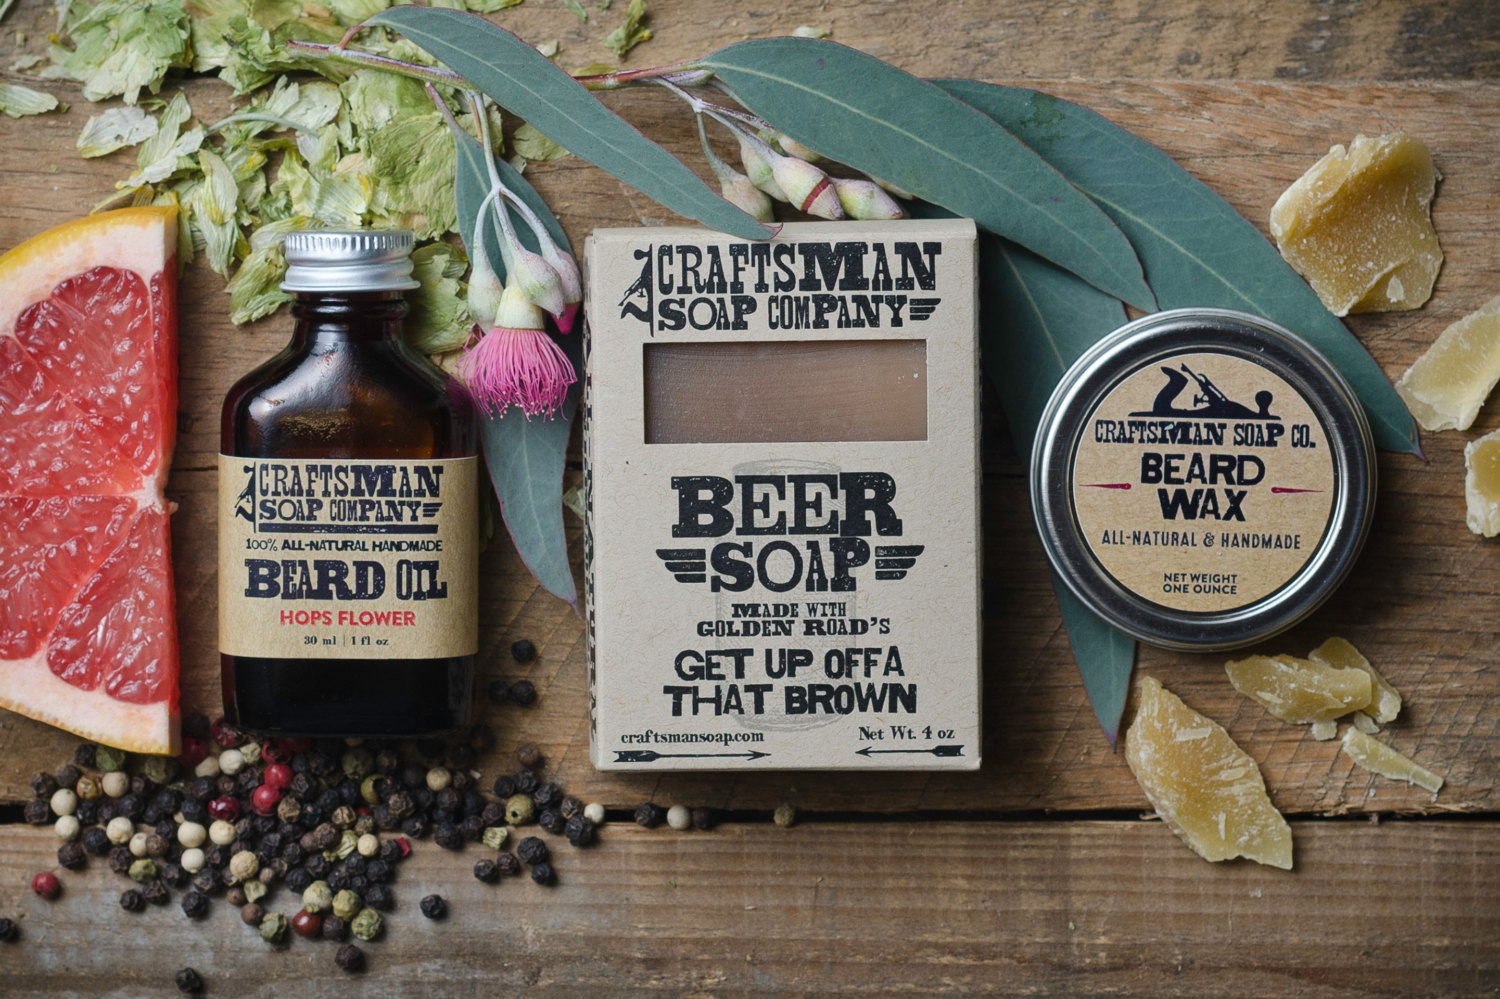 Beard Kit by Craftsman Soap Company | Finds for Father Figures | Keeper & Co. Blog